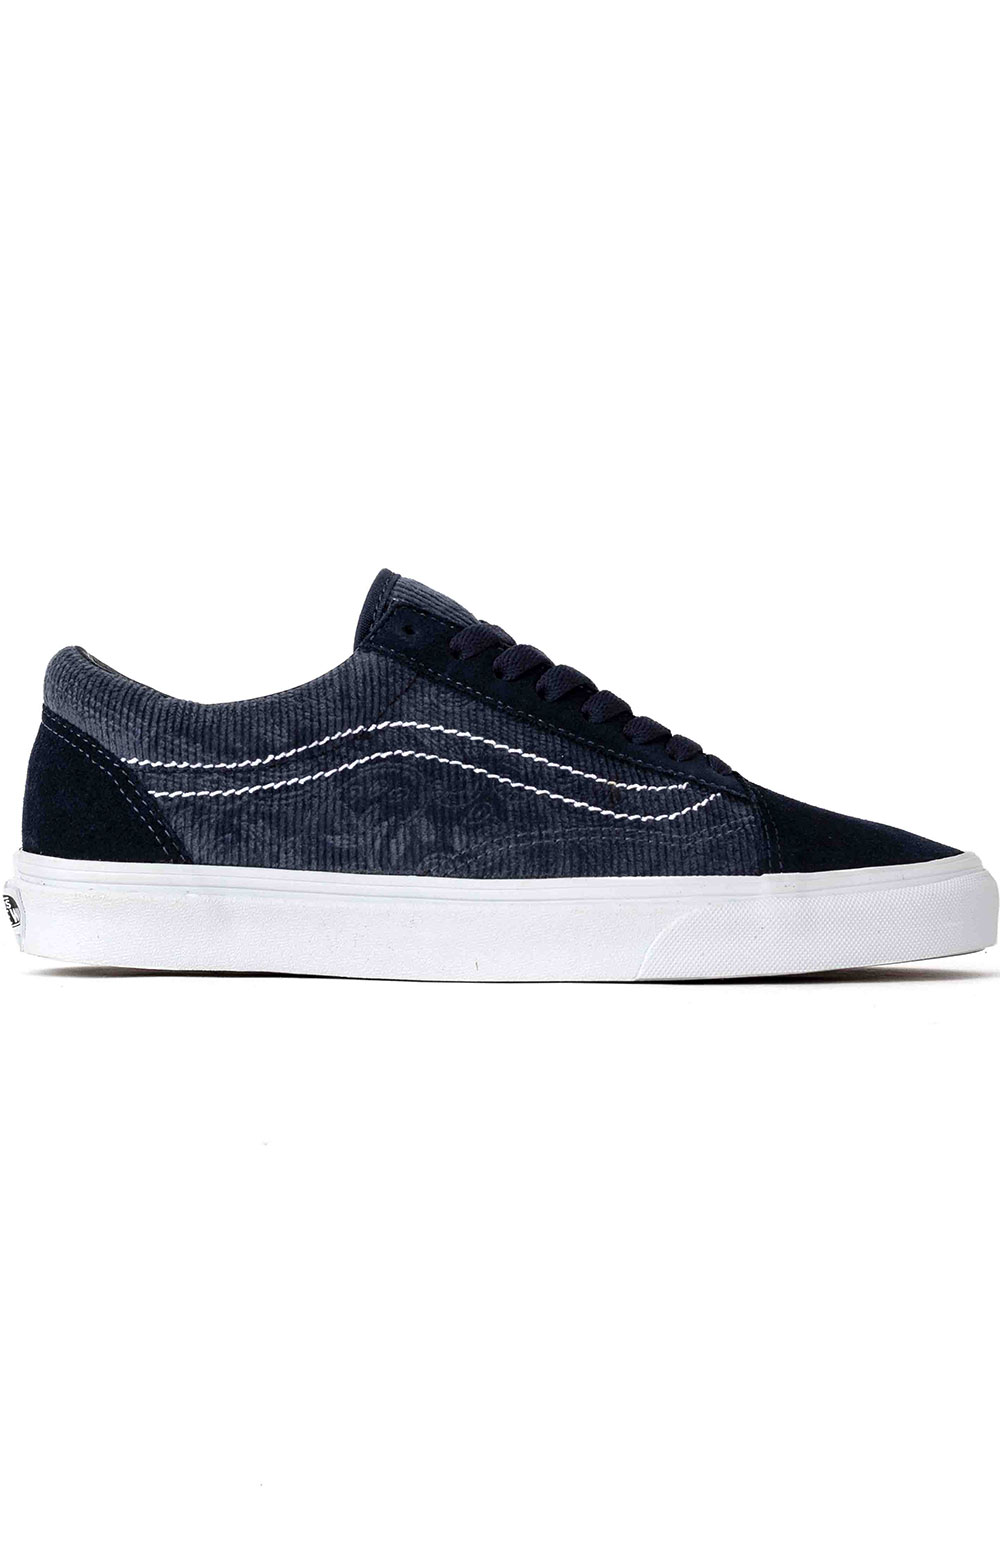 (BV5TPN) Paisley Old Skool Shoe - Blue